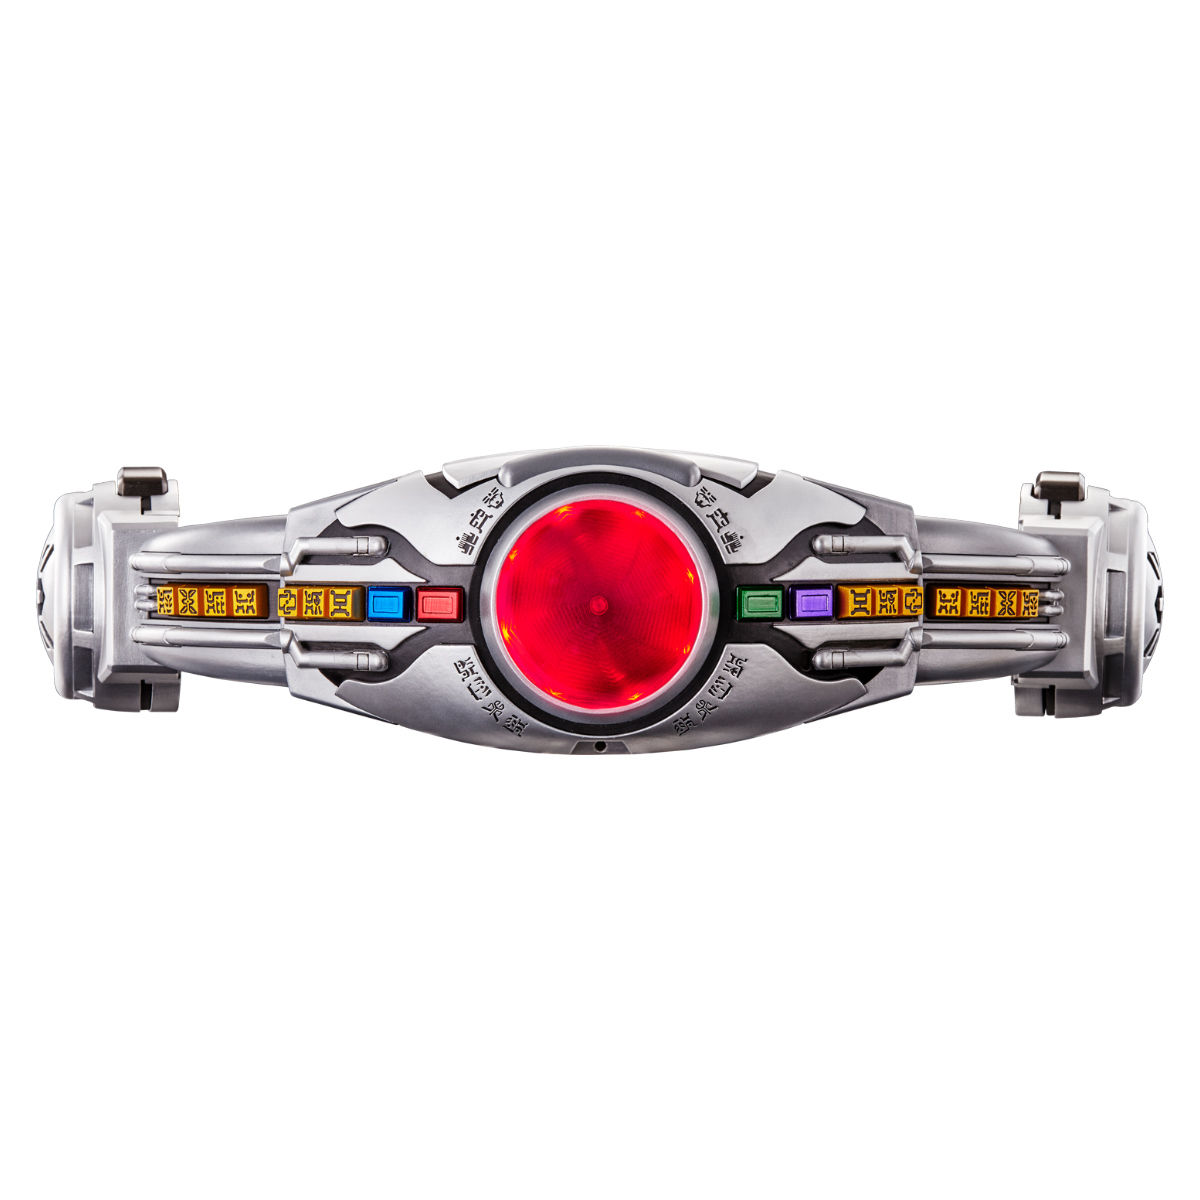 complete selection modification henshin belt arcle csm 変身ベルト